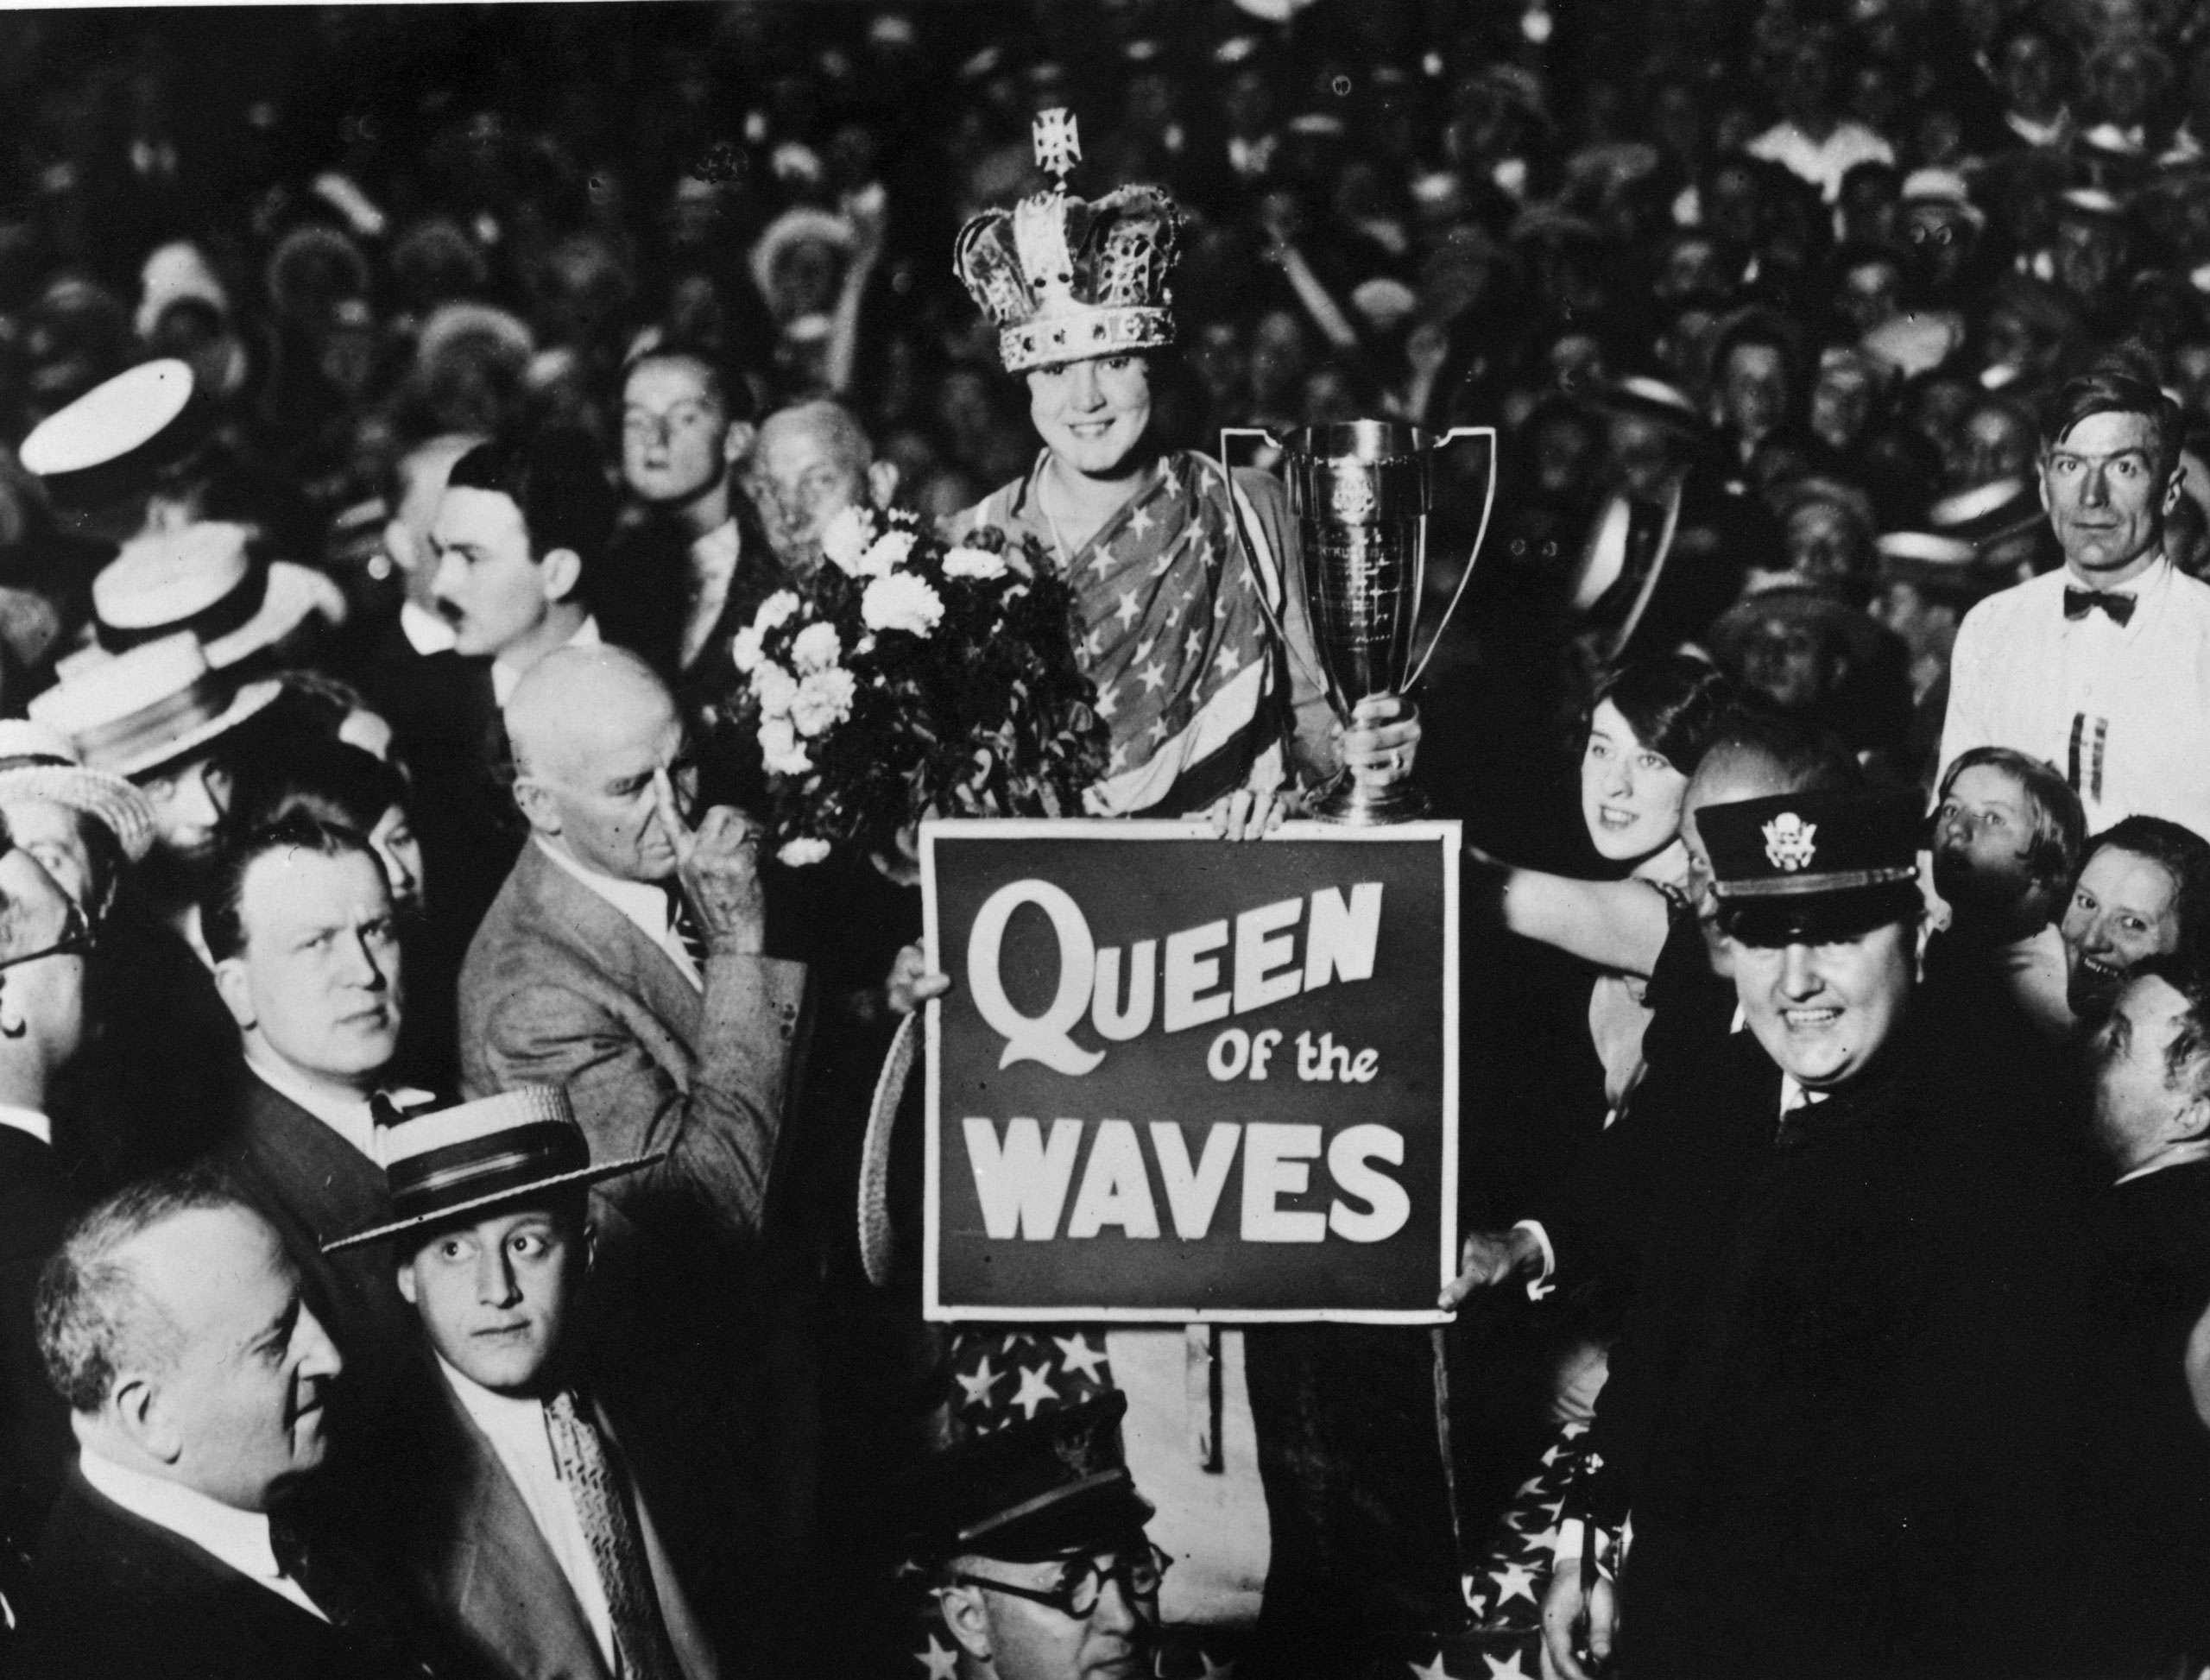 American swimmer Gertrude Ederle, the first female to swim across the English Channel, is crowned 'Queen of the Waves' in New York City on Sept. 8, 1926. The month before, she had been honored with a ticker-tape parade.